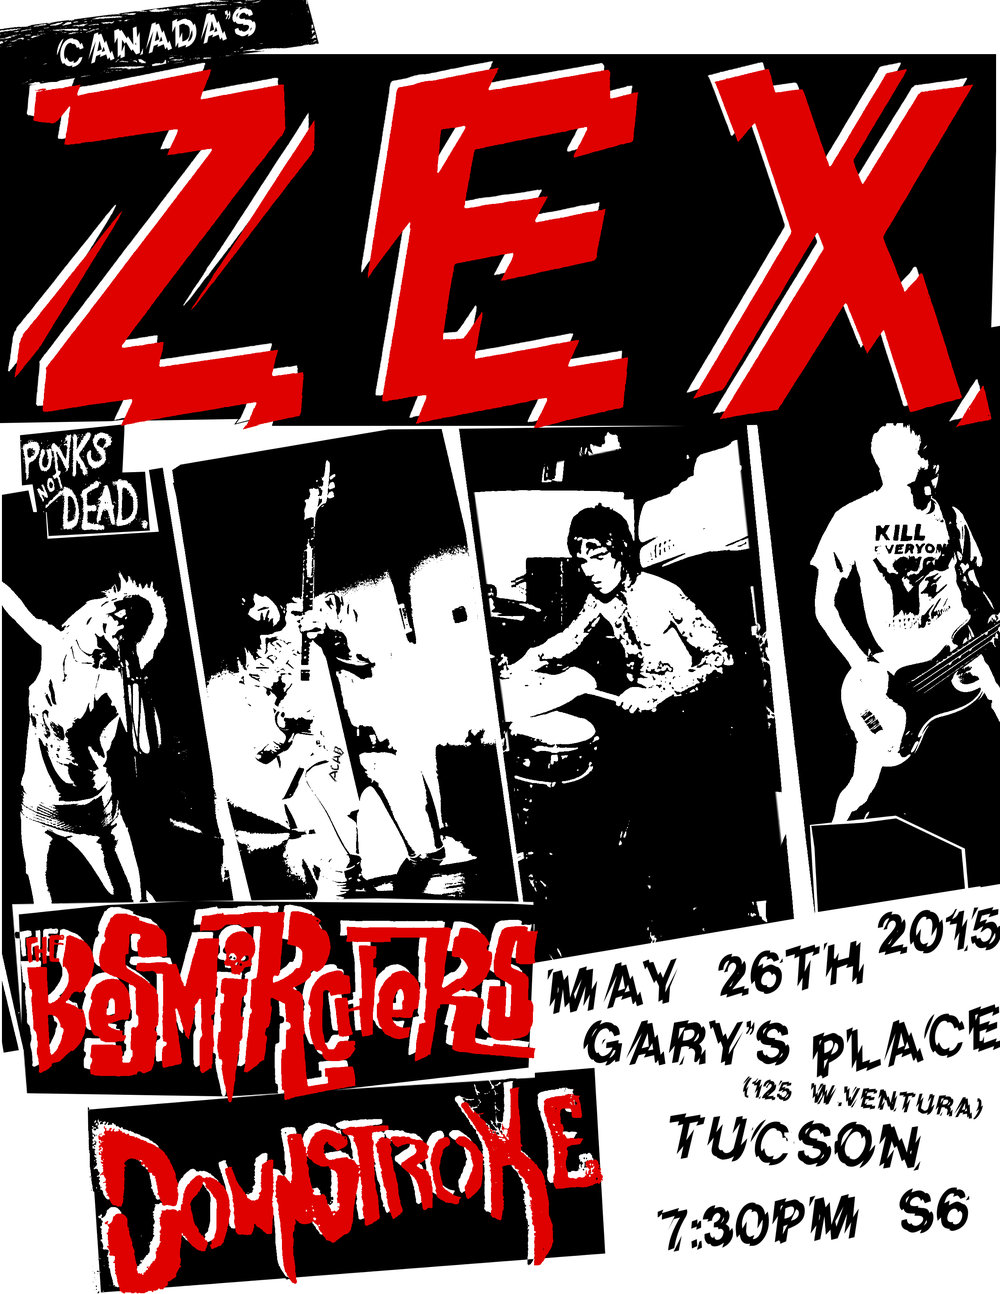 flyer-15.05.26-tucson-zex-red.jpg